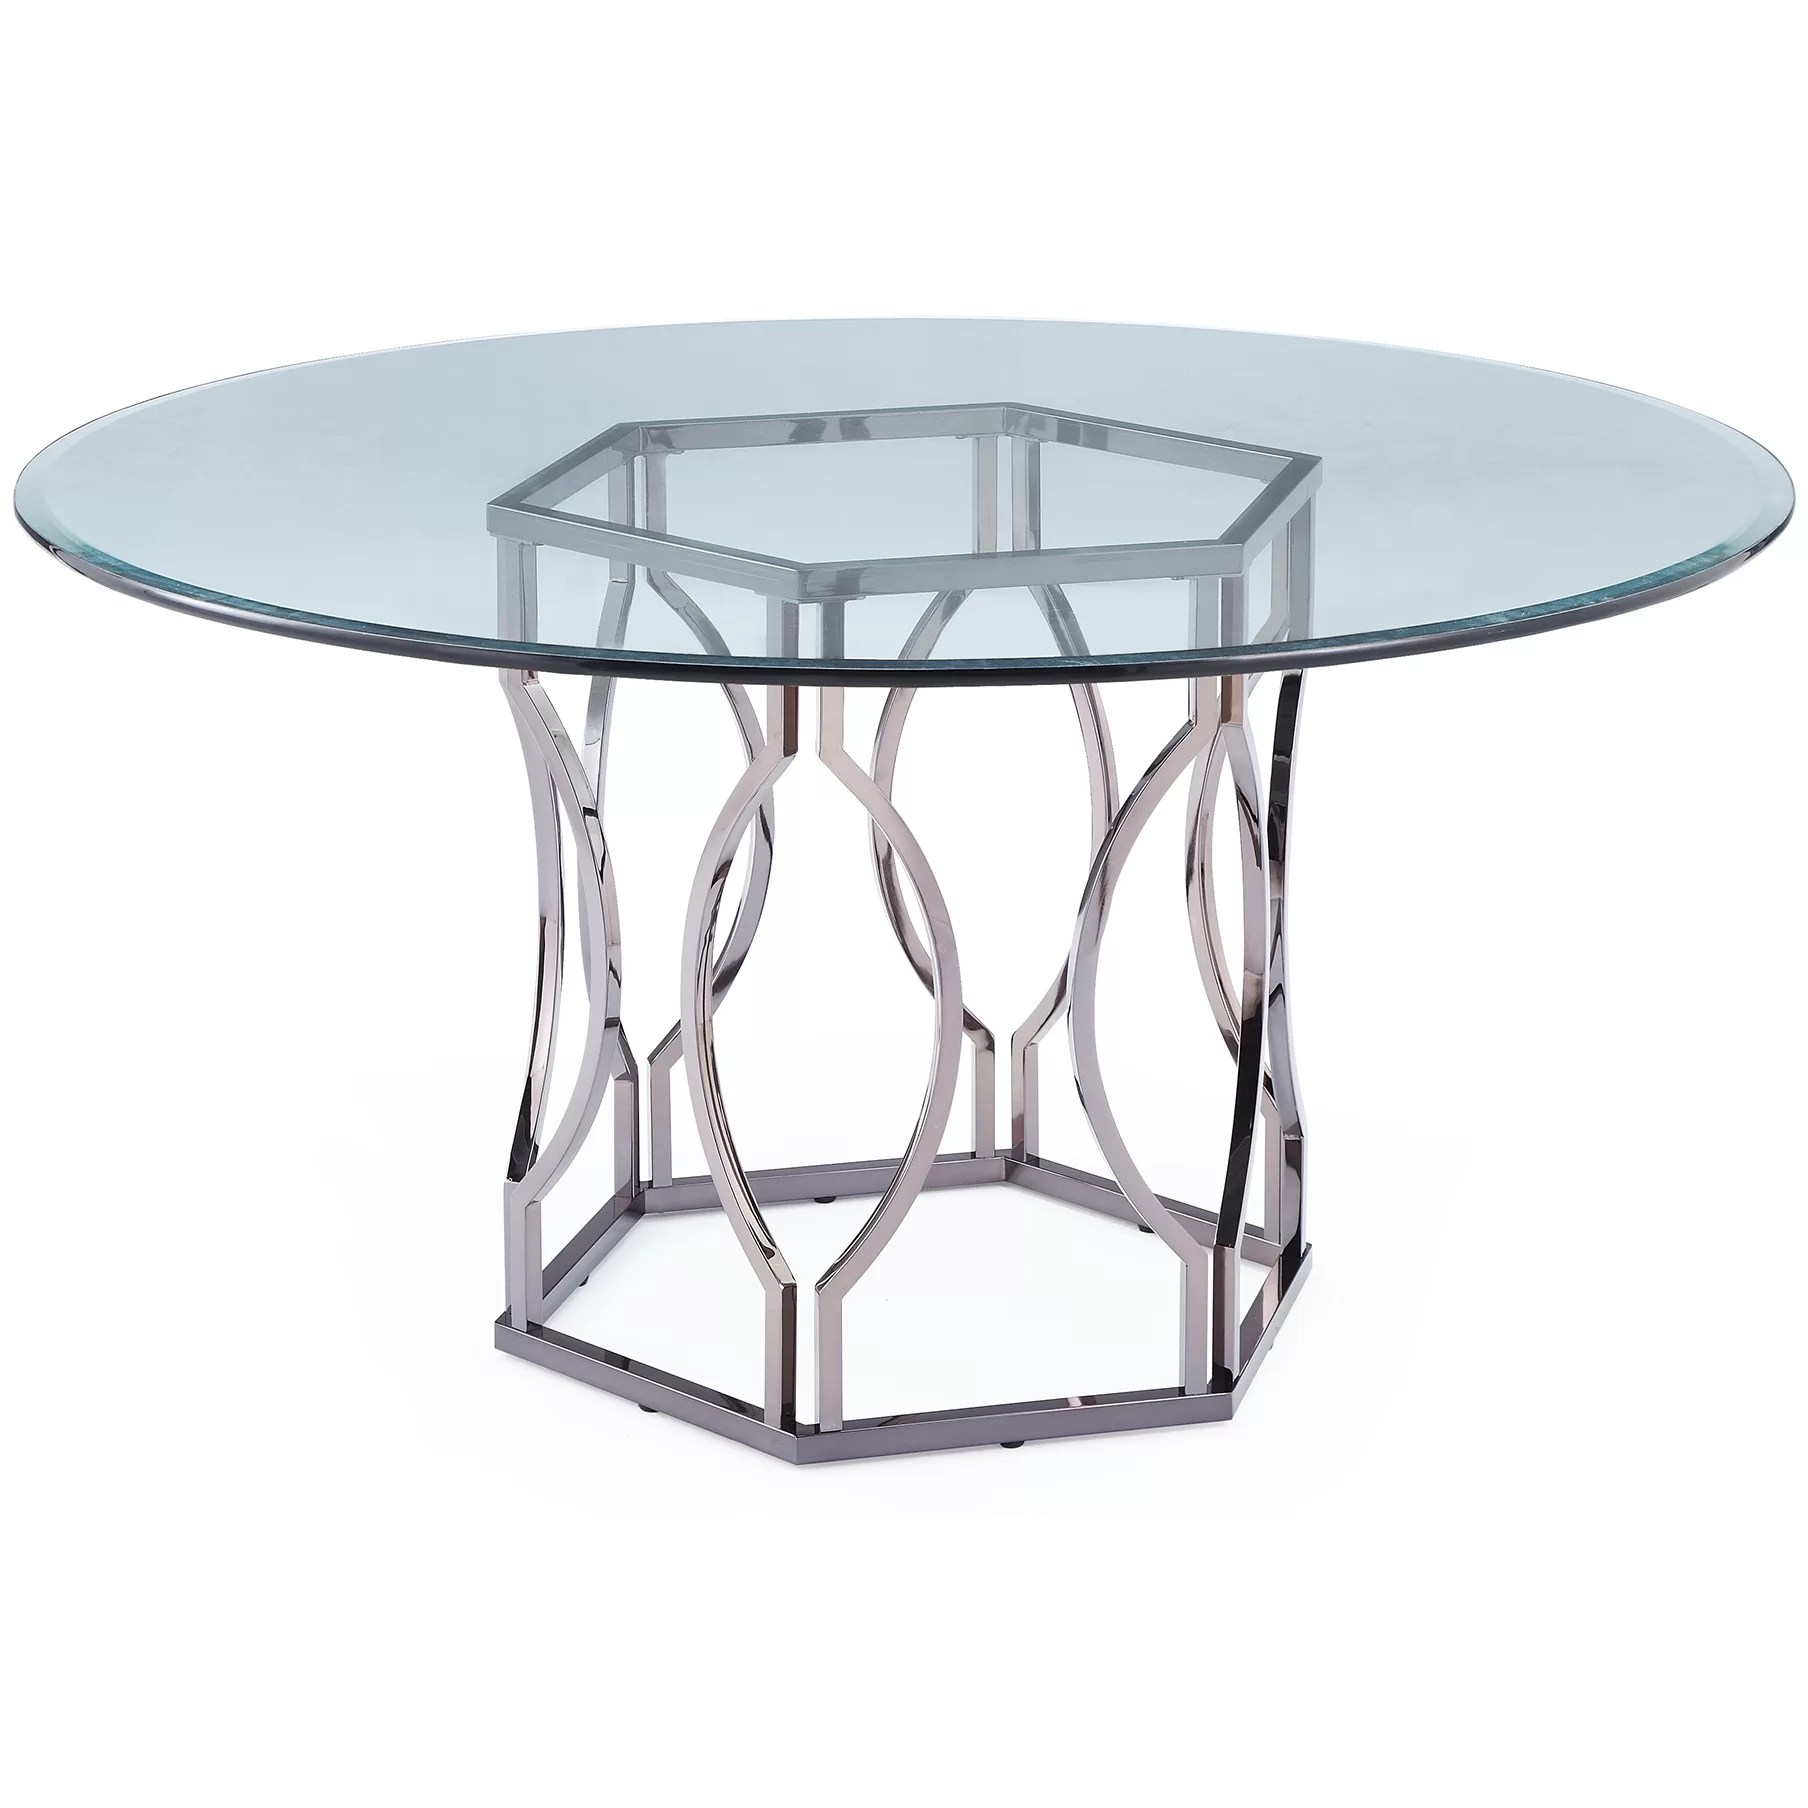 Round Glass Dining Table Mercer41 Viggo Round Glass Dining Table And Reviews Wayfair